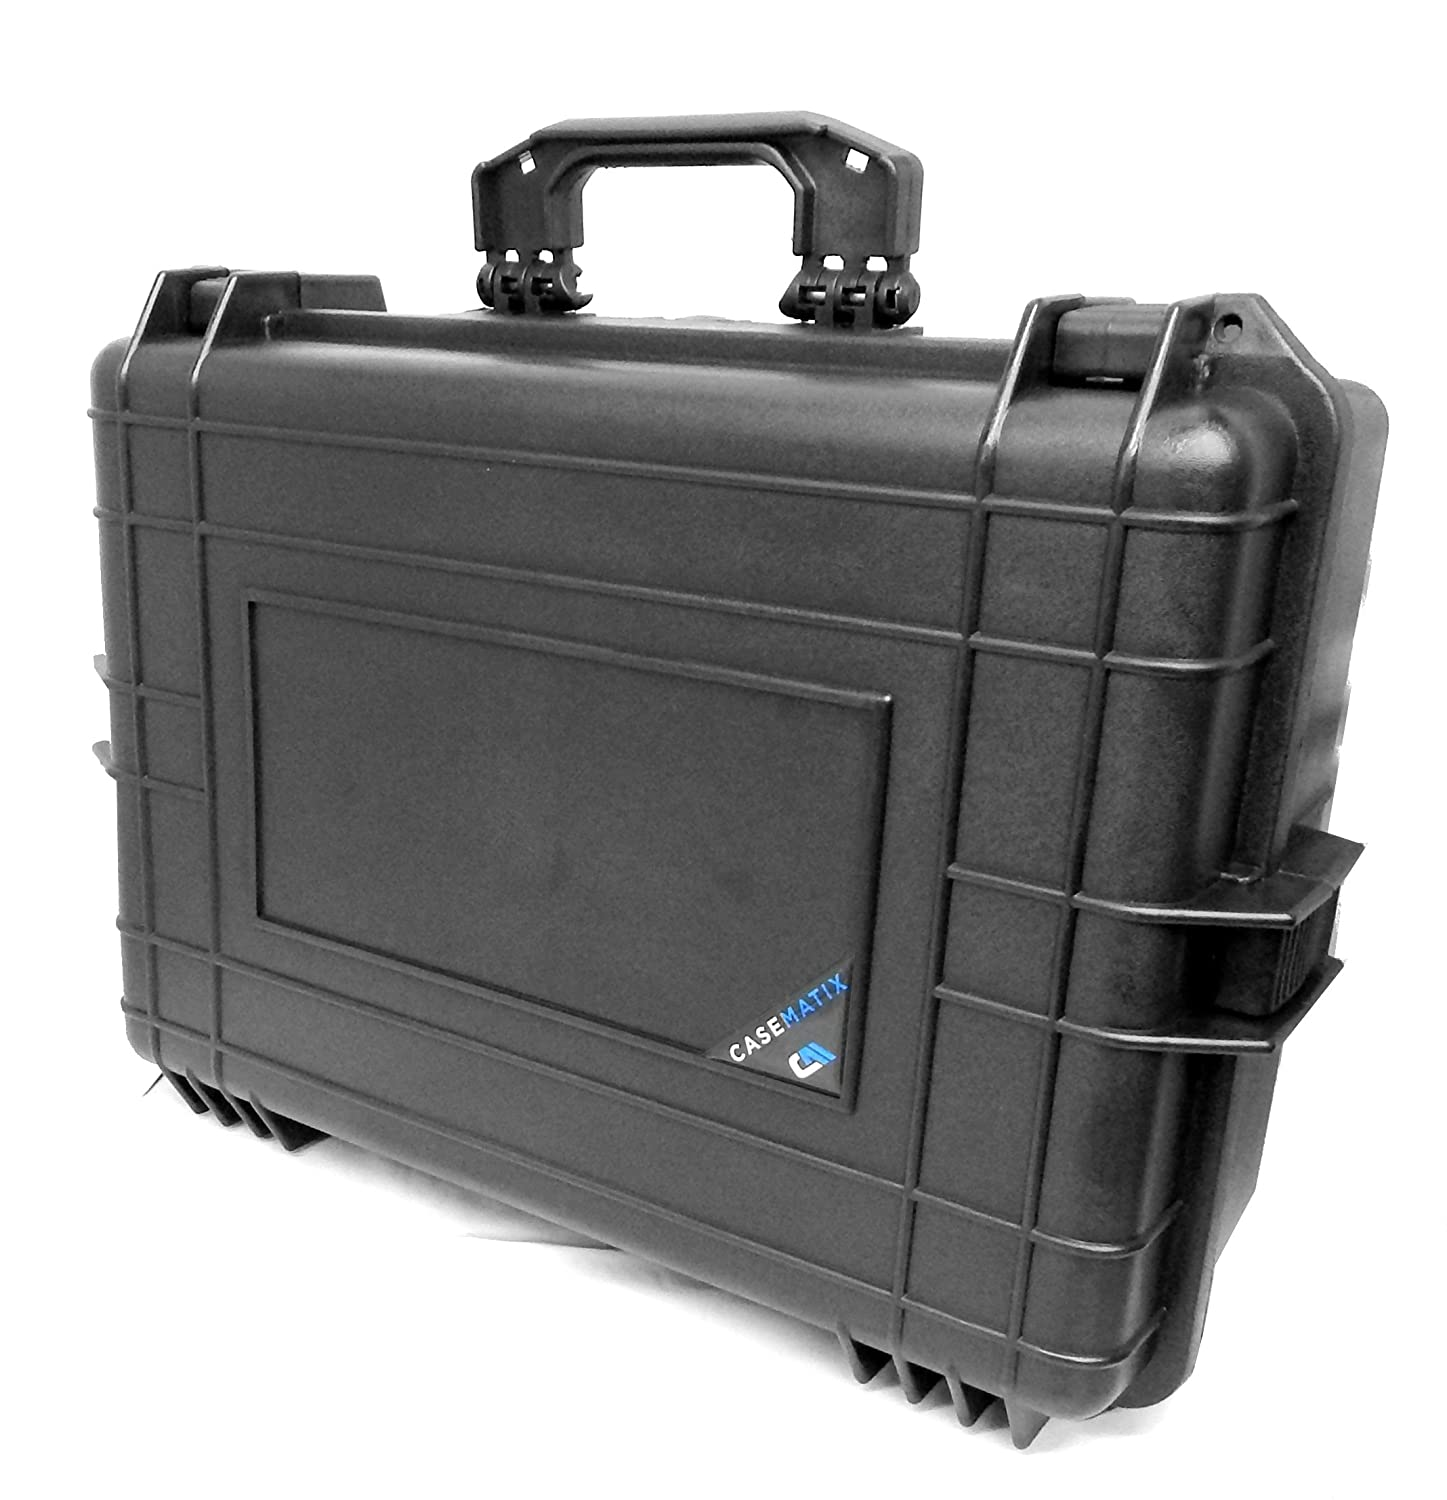 Amazon.com: CASEMATIX Projector Case Compatible with Epson Home Cinema 2150 Home Projector - Waterproof, Rugged Impact Protection: Electronics